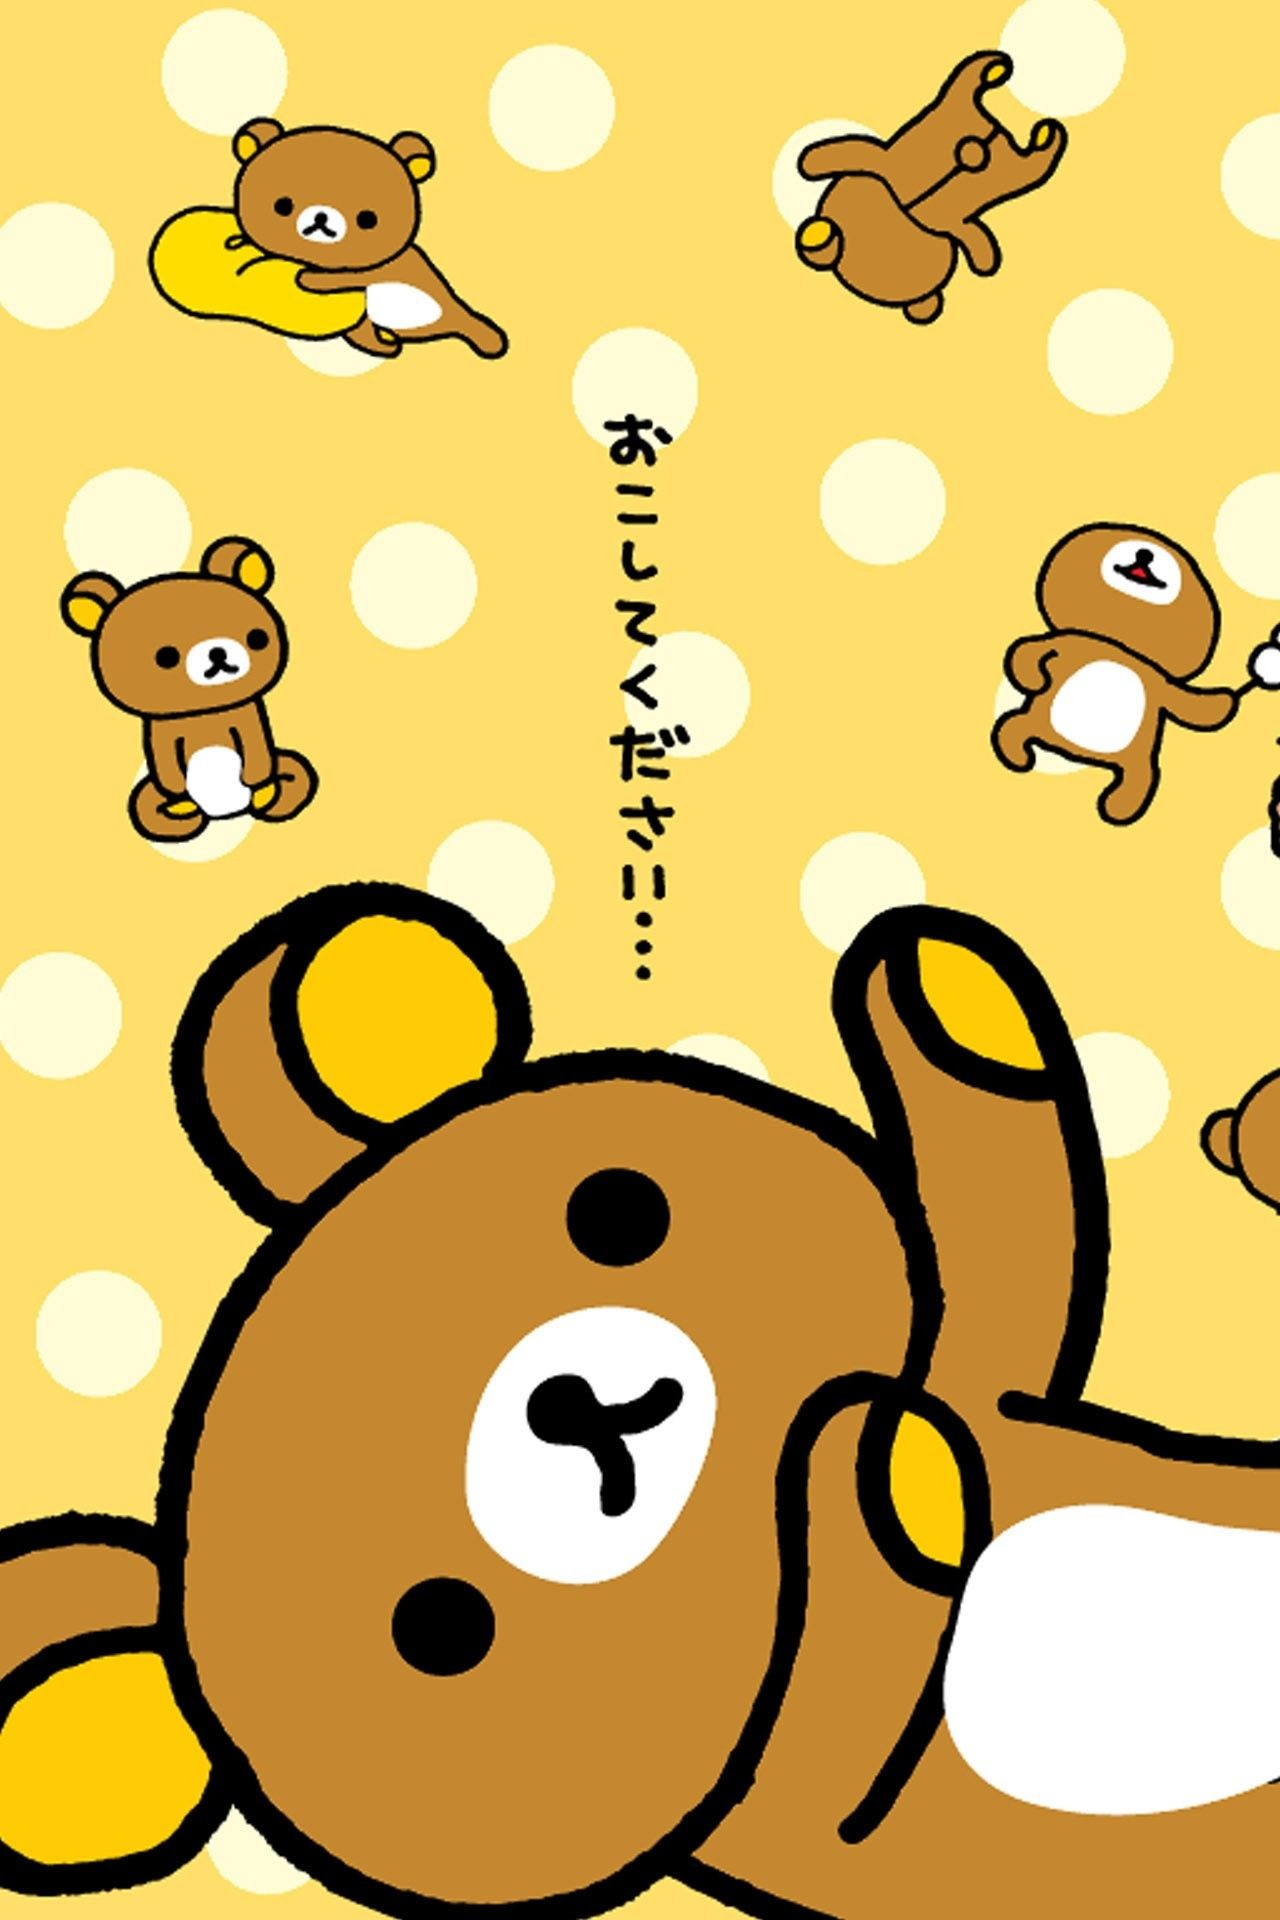 Res: 1280x1920, cool rilakkuma wallpaper  for iphone 6